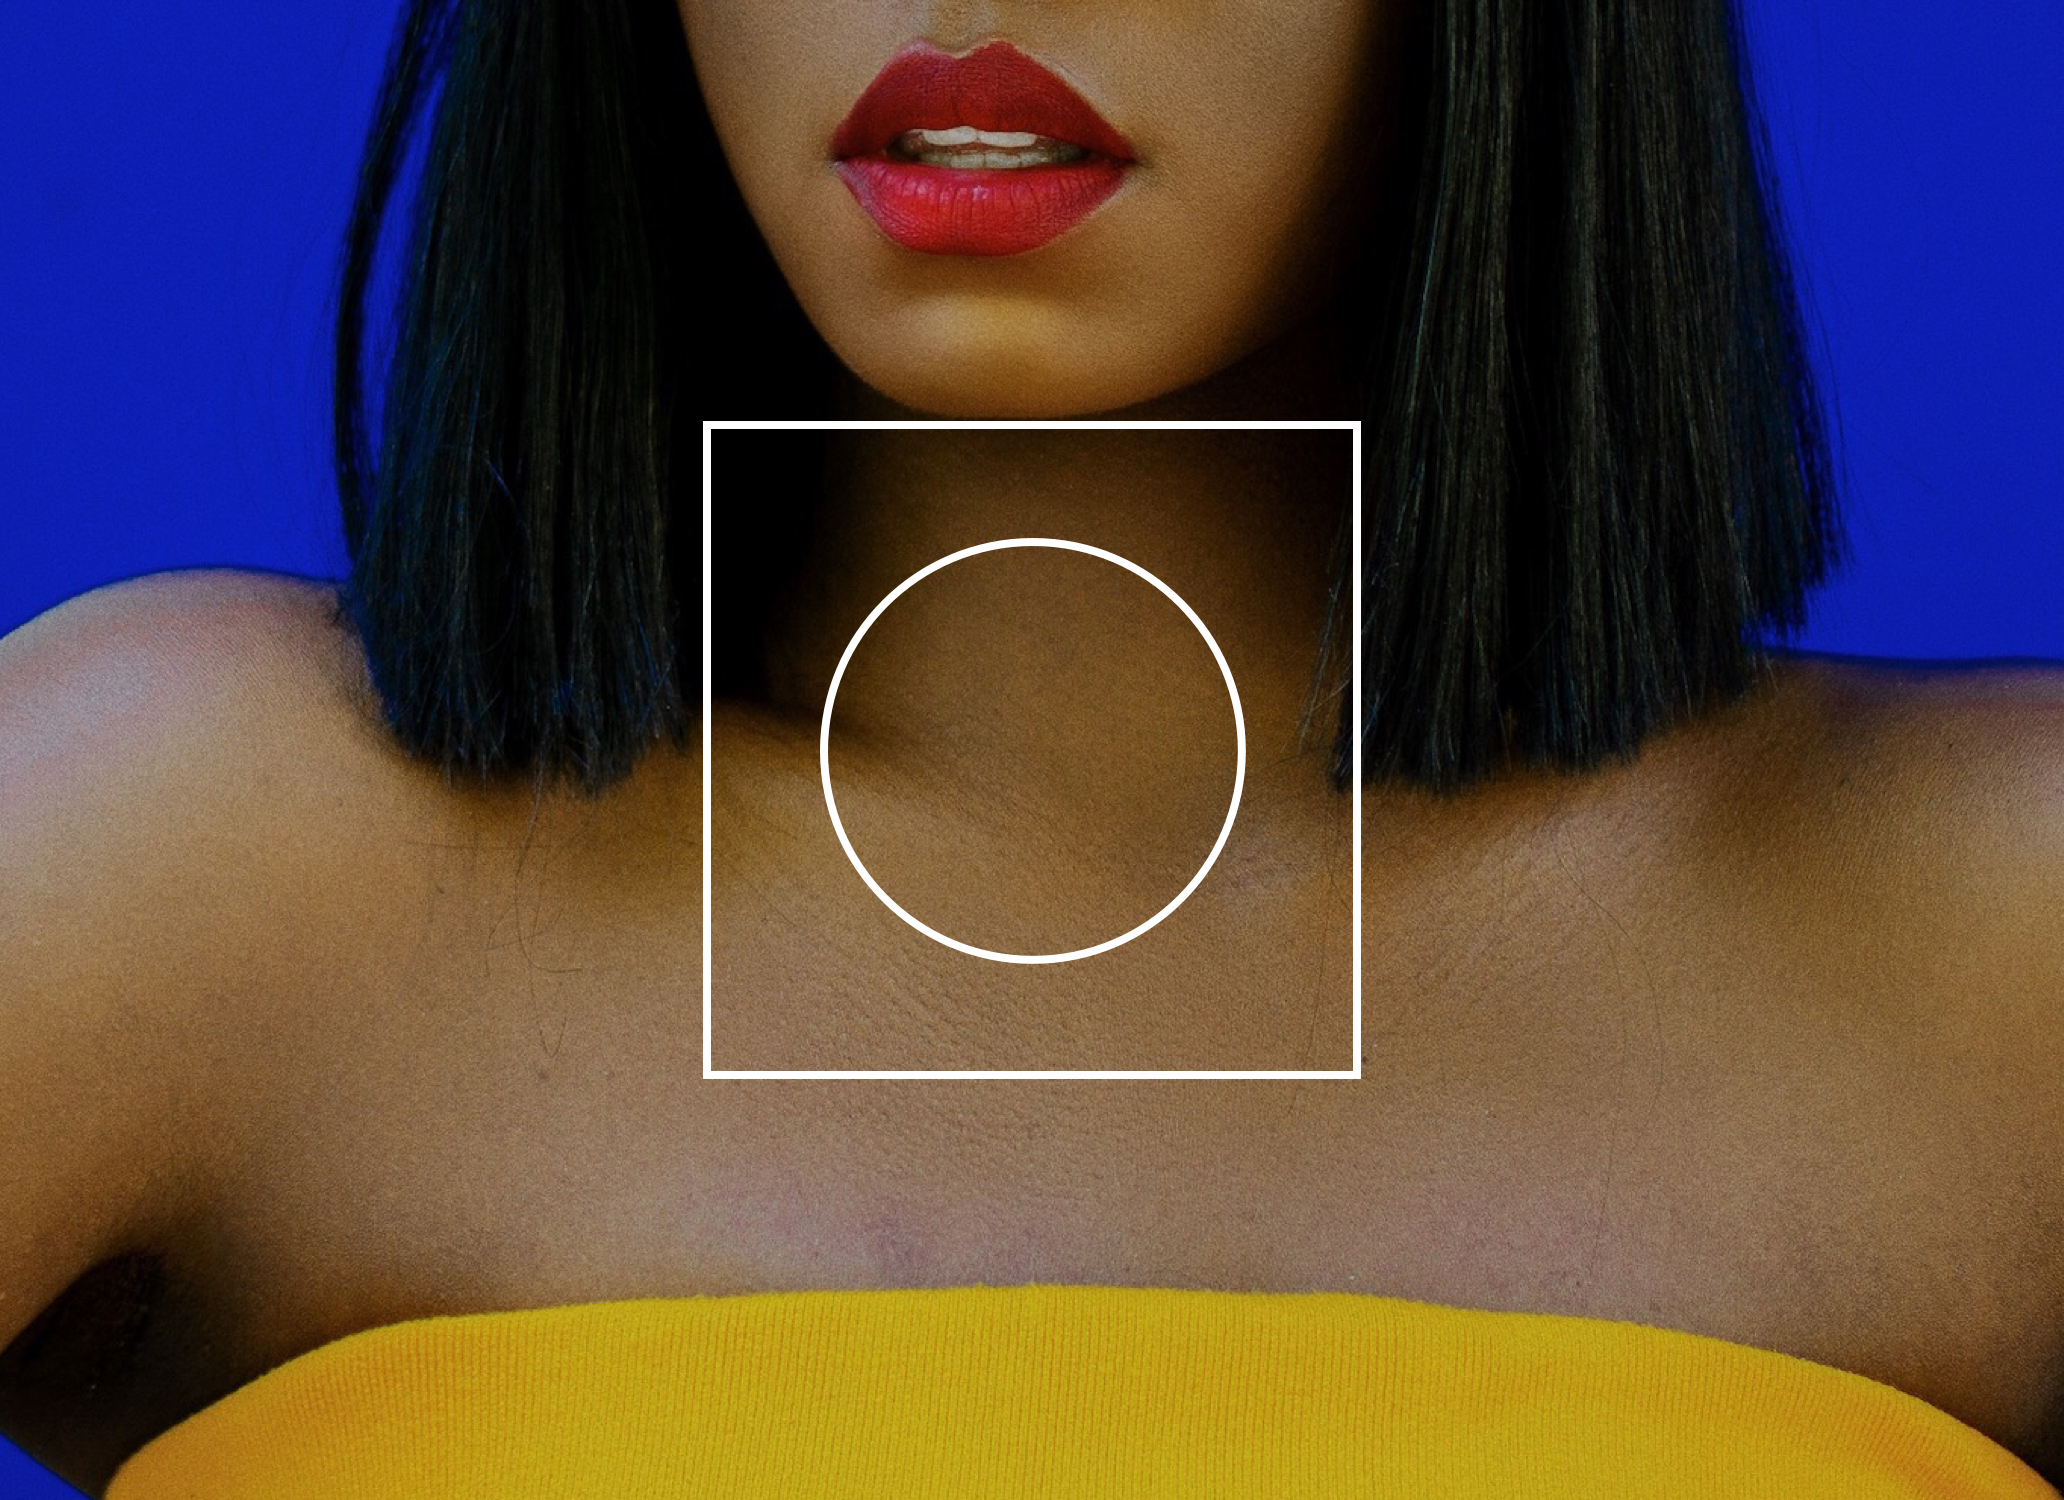 VSCO Launches Recipes To Simplify Editing Workflow   November 7, 2017 — When we edit our photos, we create looks that speak to who we are. With our new Recipes tool, you can now save your favorite combination of edits to recreate looks that feel consistently you.